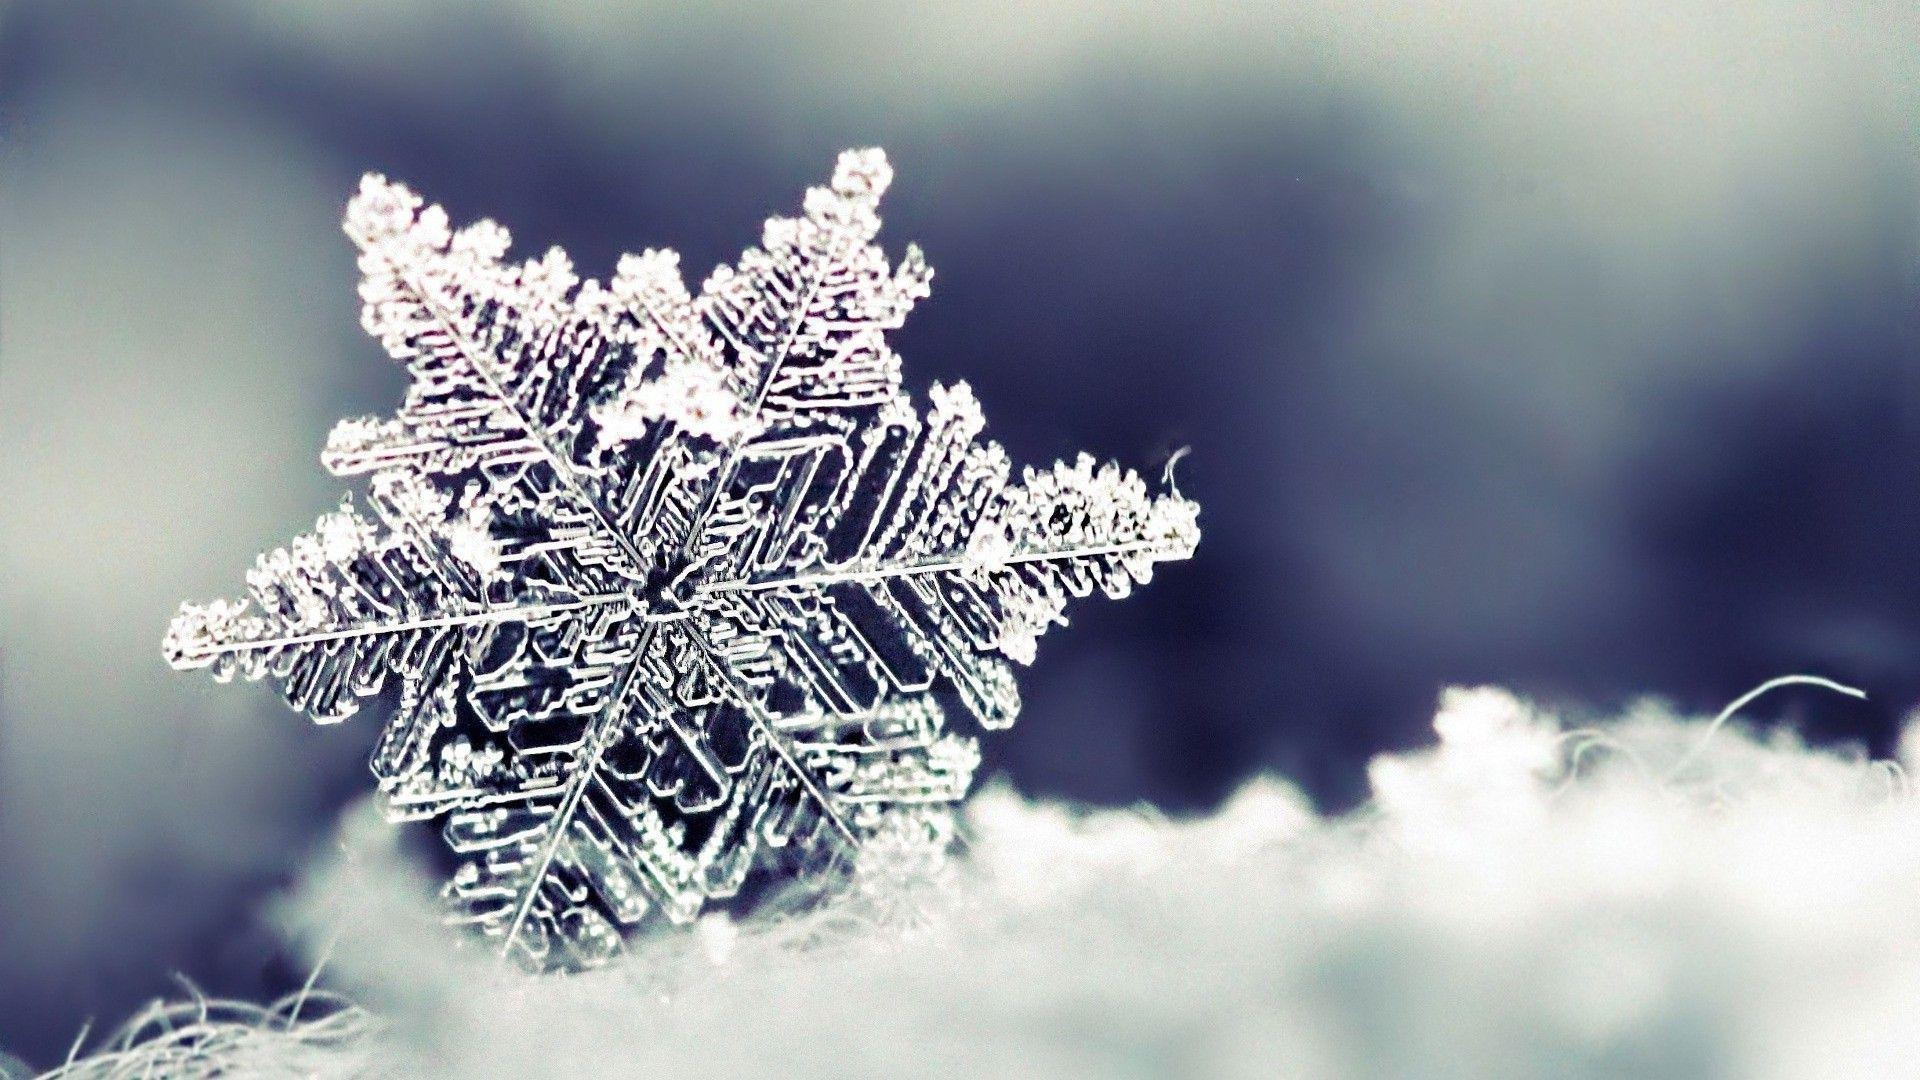 real snowflakes background - photo #15